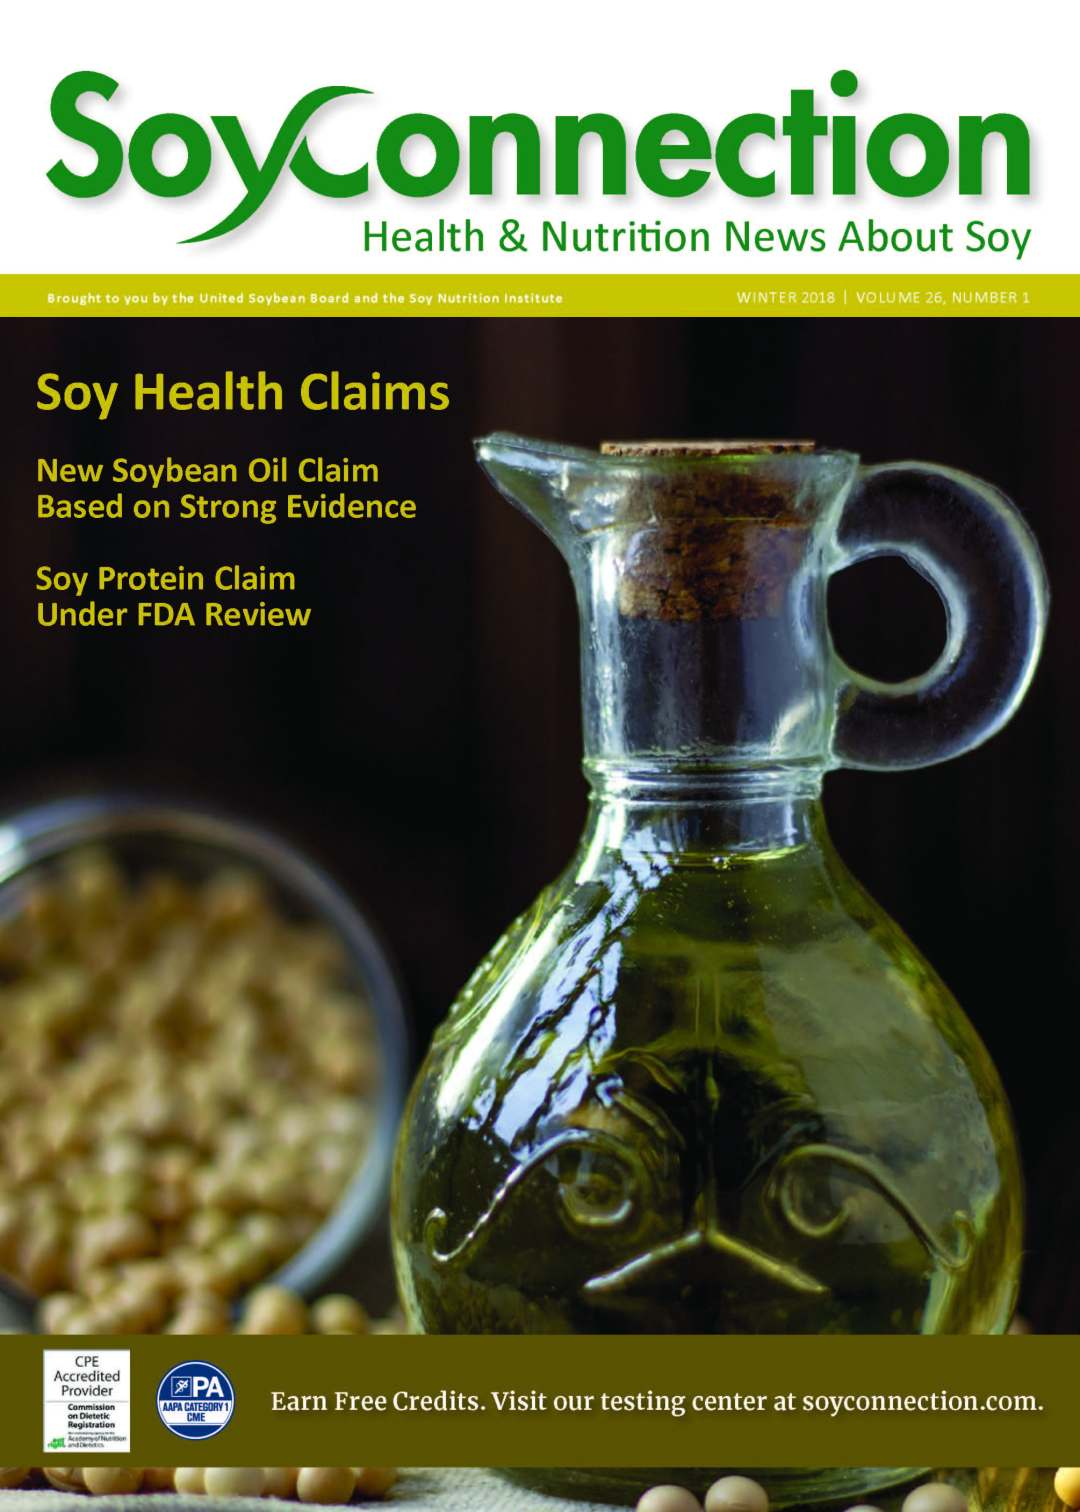 Soy Connection Soy Health Claims